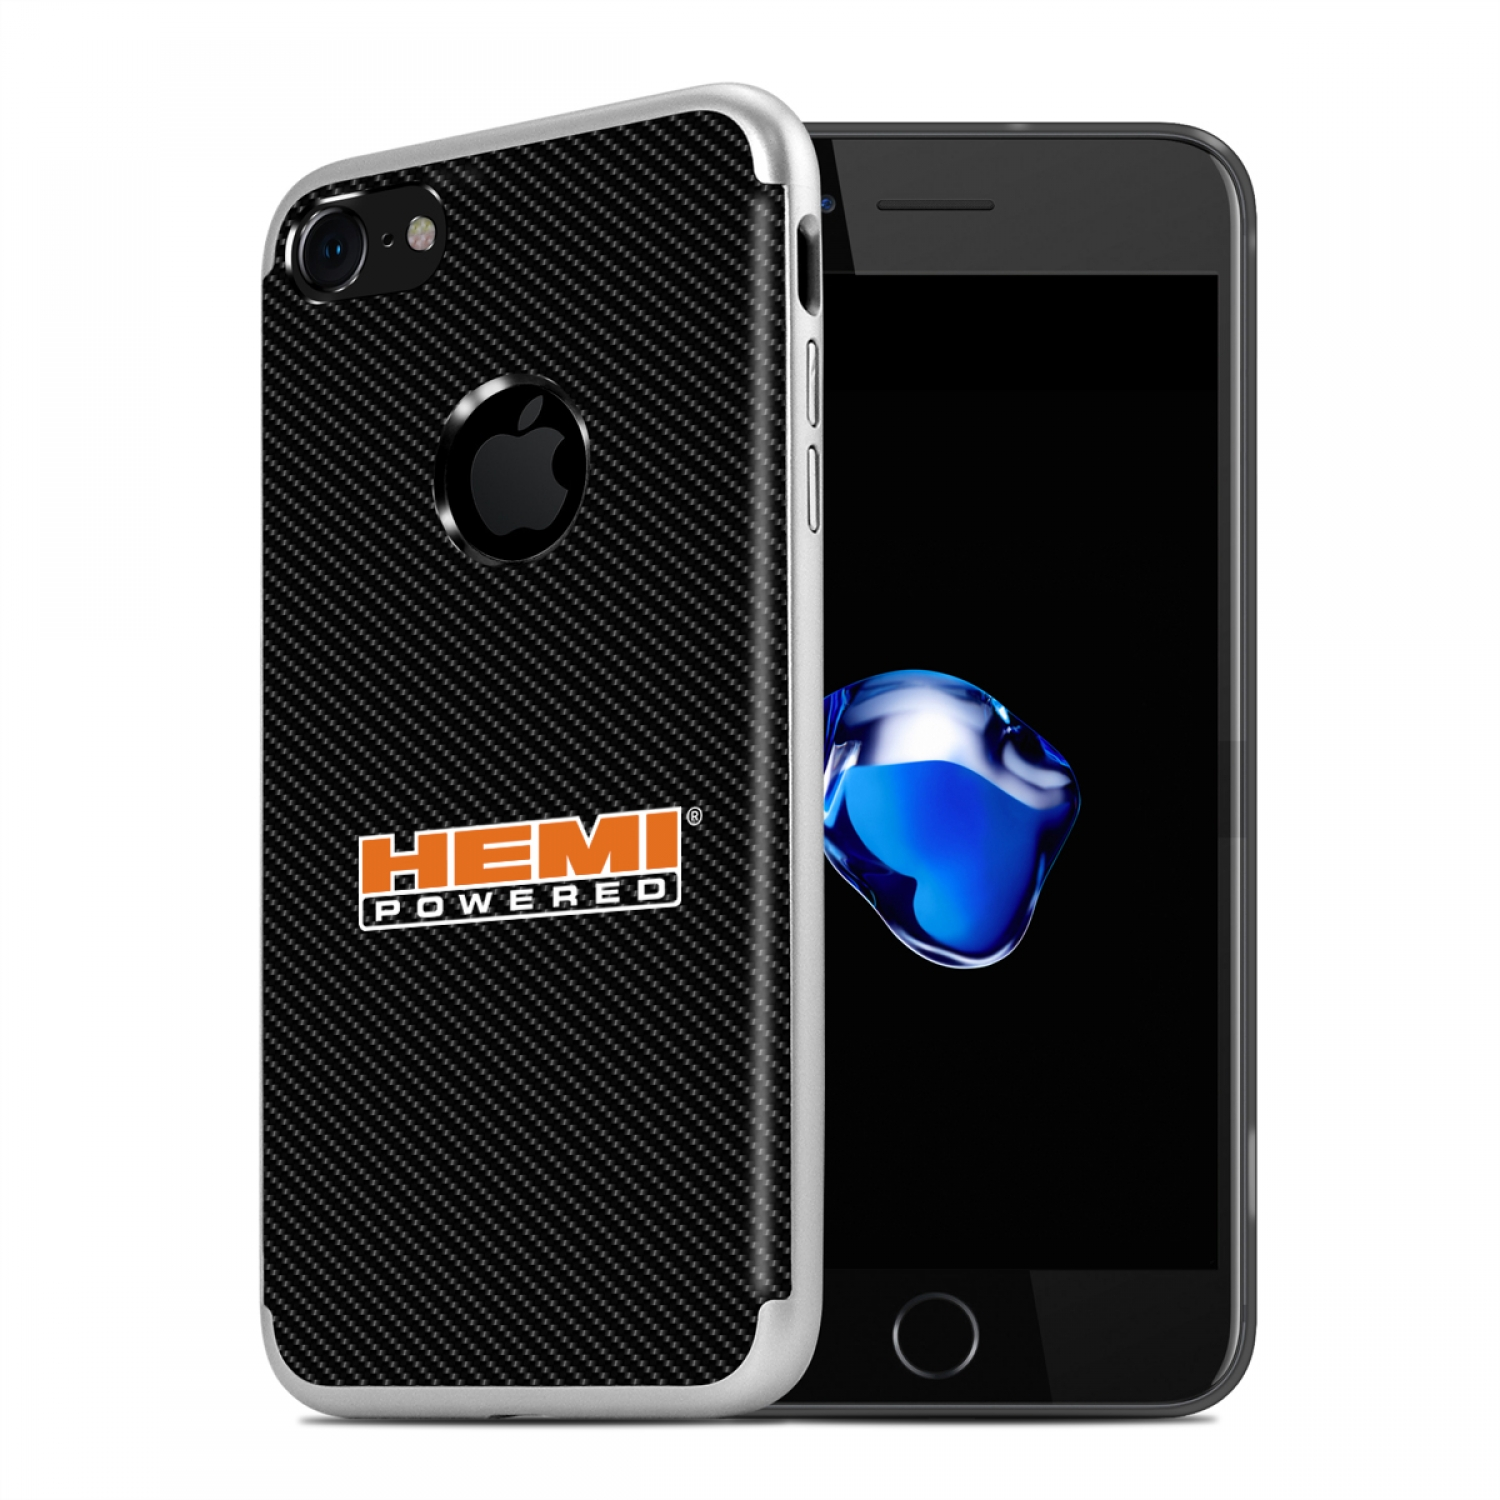 iPhone 7 Case, HEMI Powered PC+TPU Shockproof Black Carbon Fiber Textures Cell Phone Case